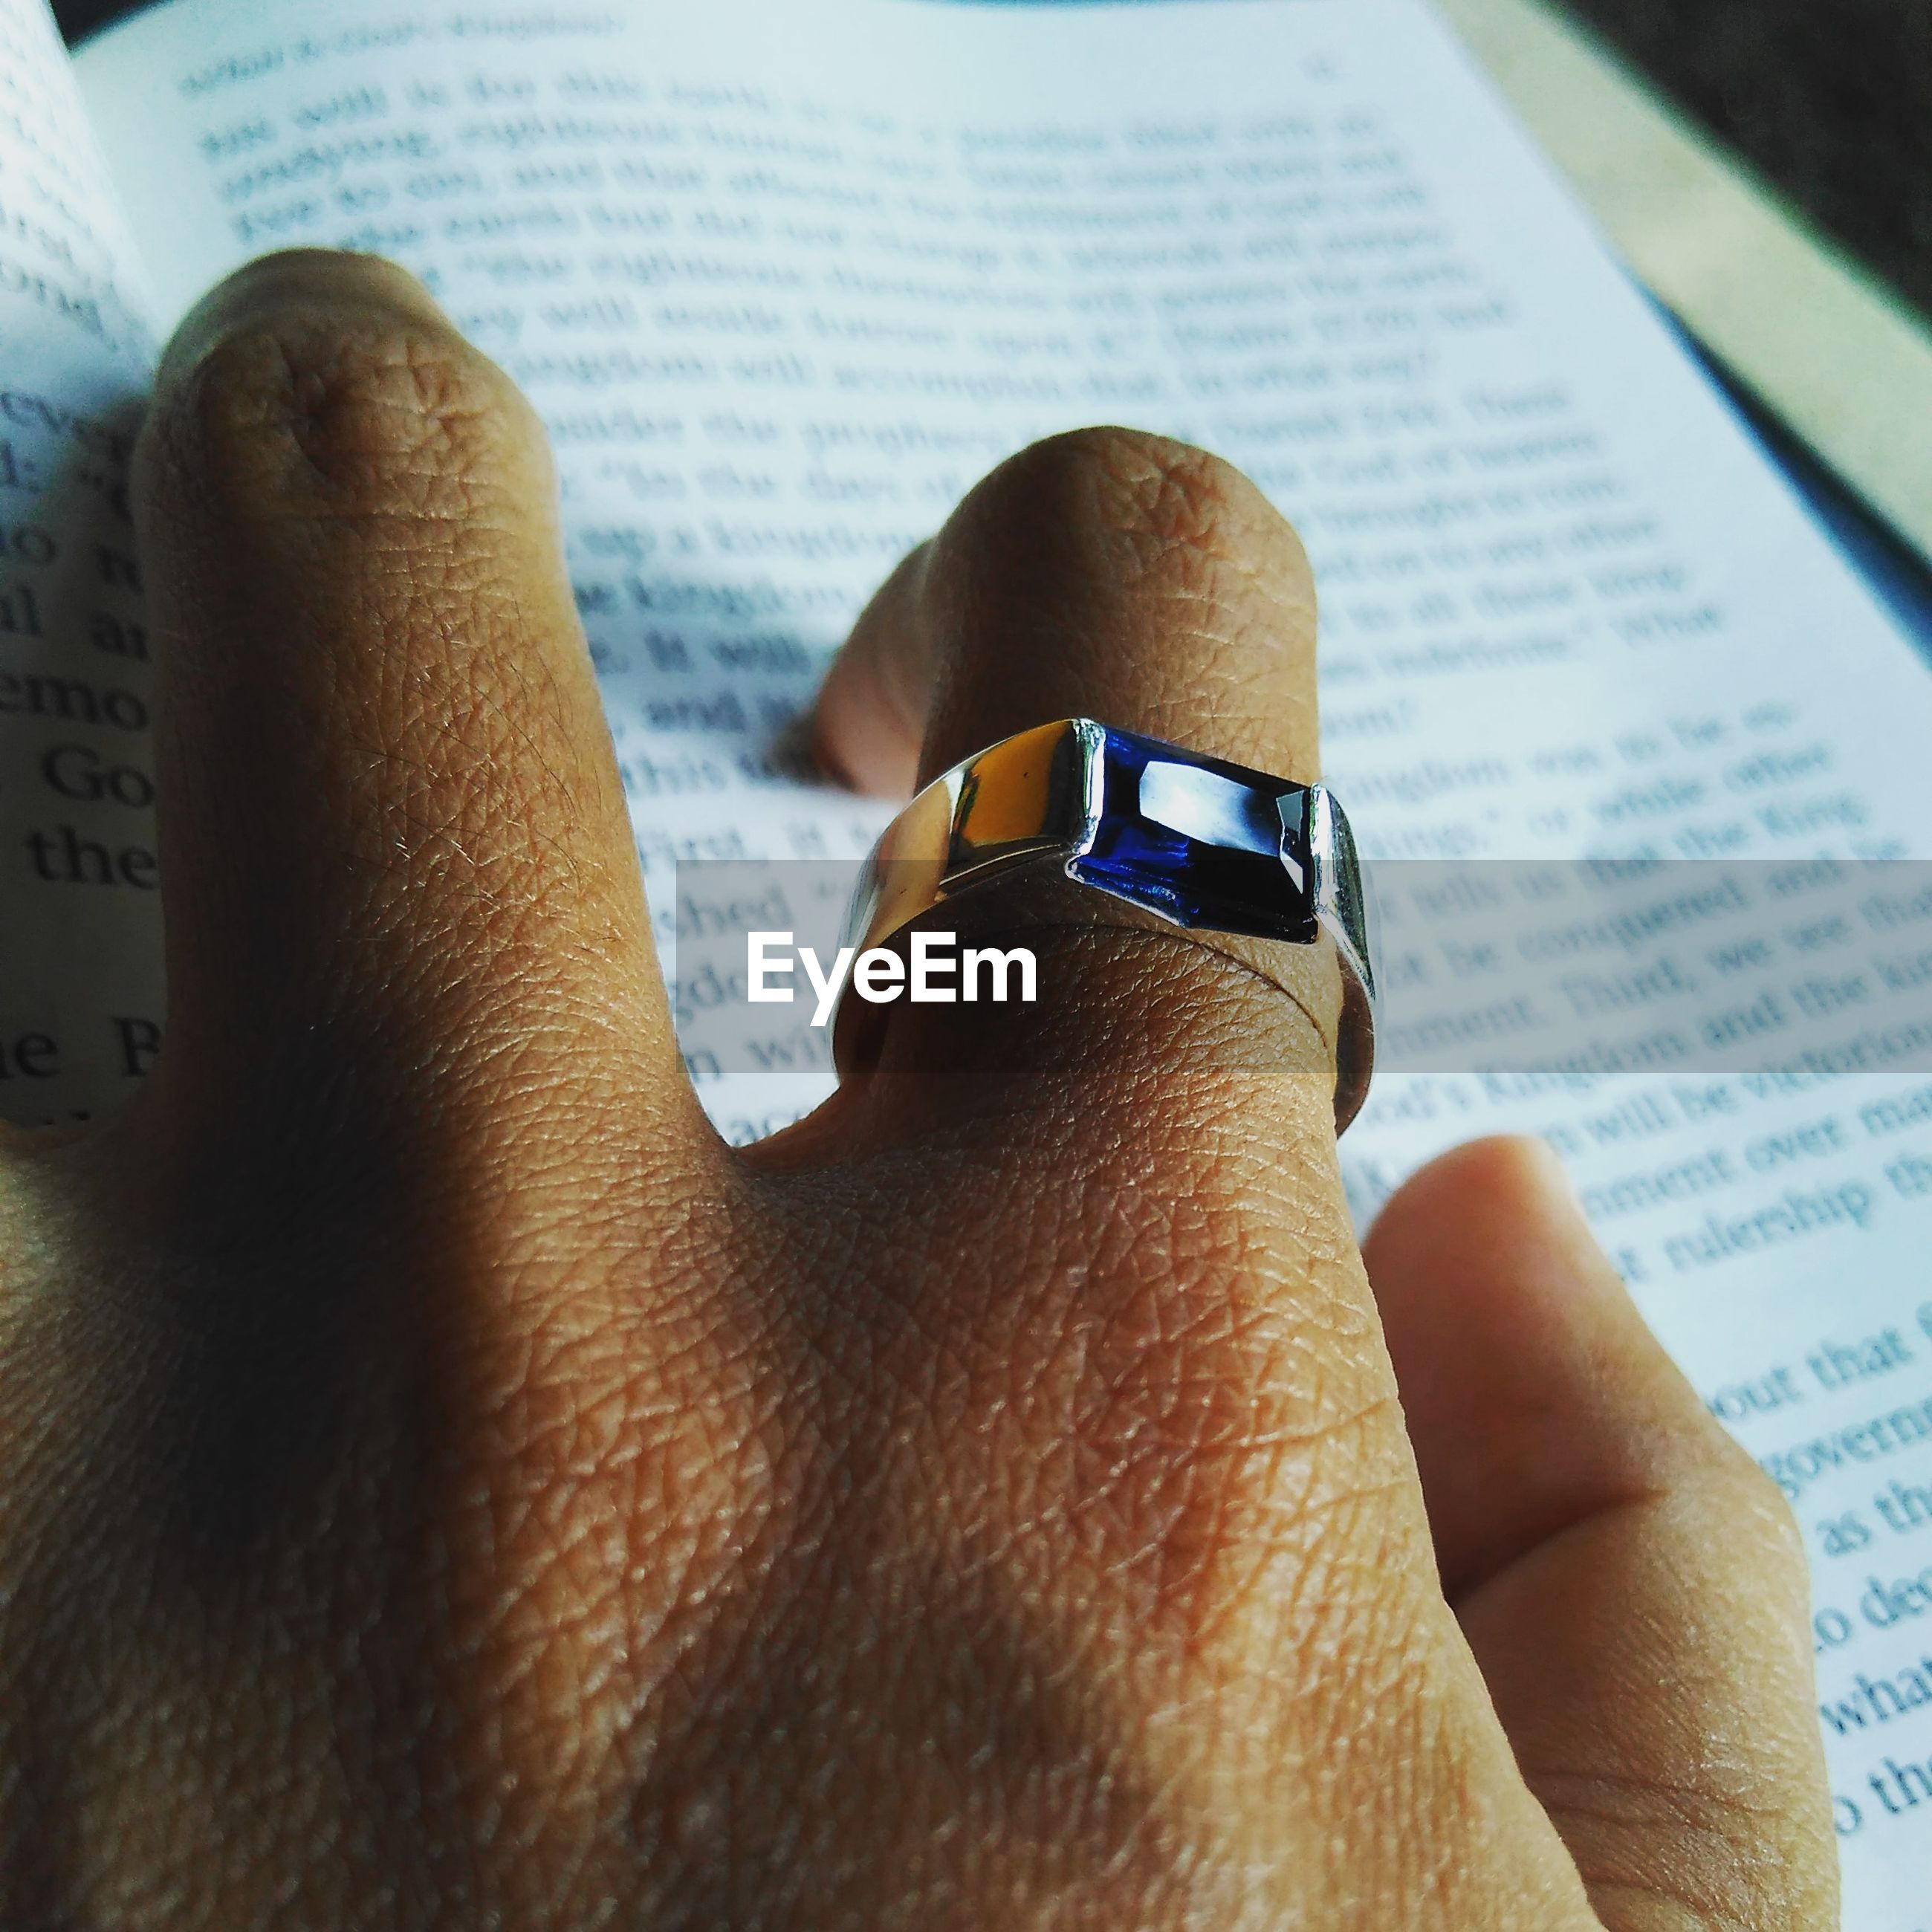 Cropped hand wearing ring on book